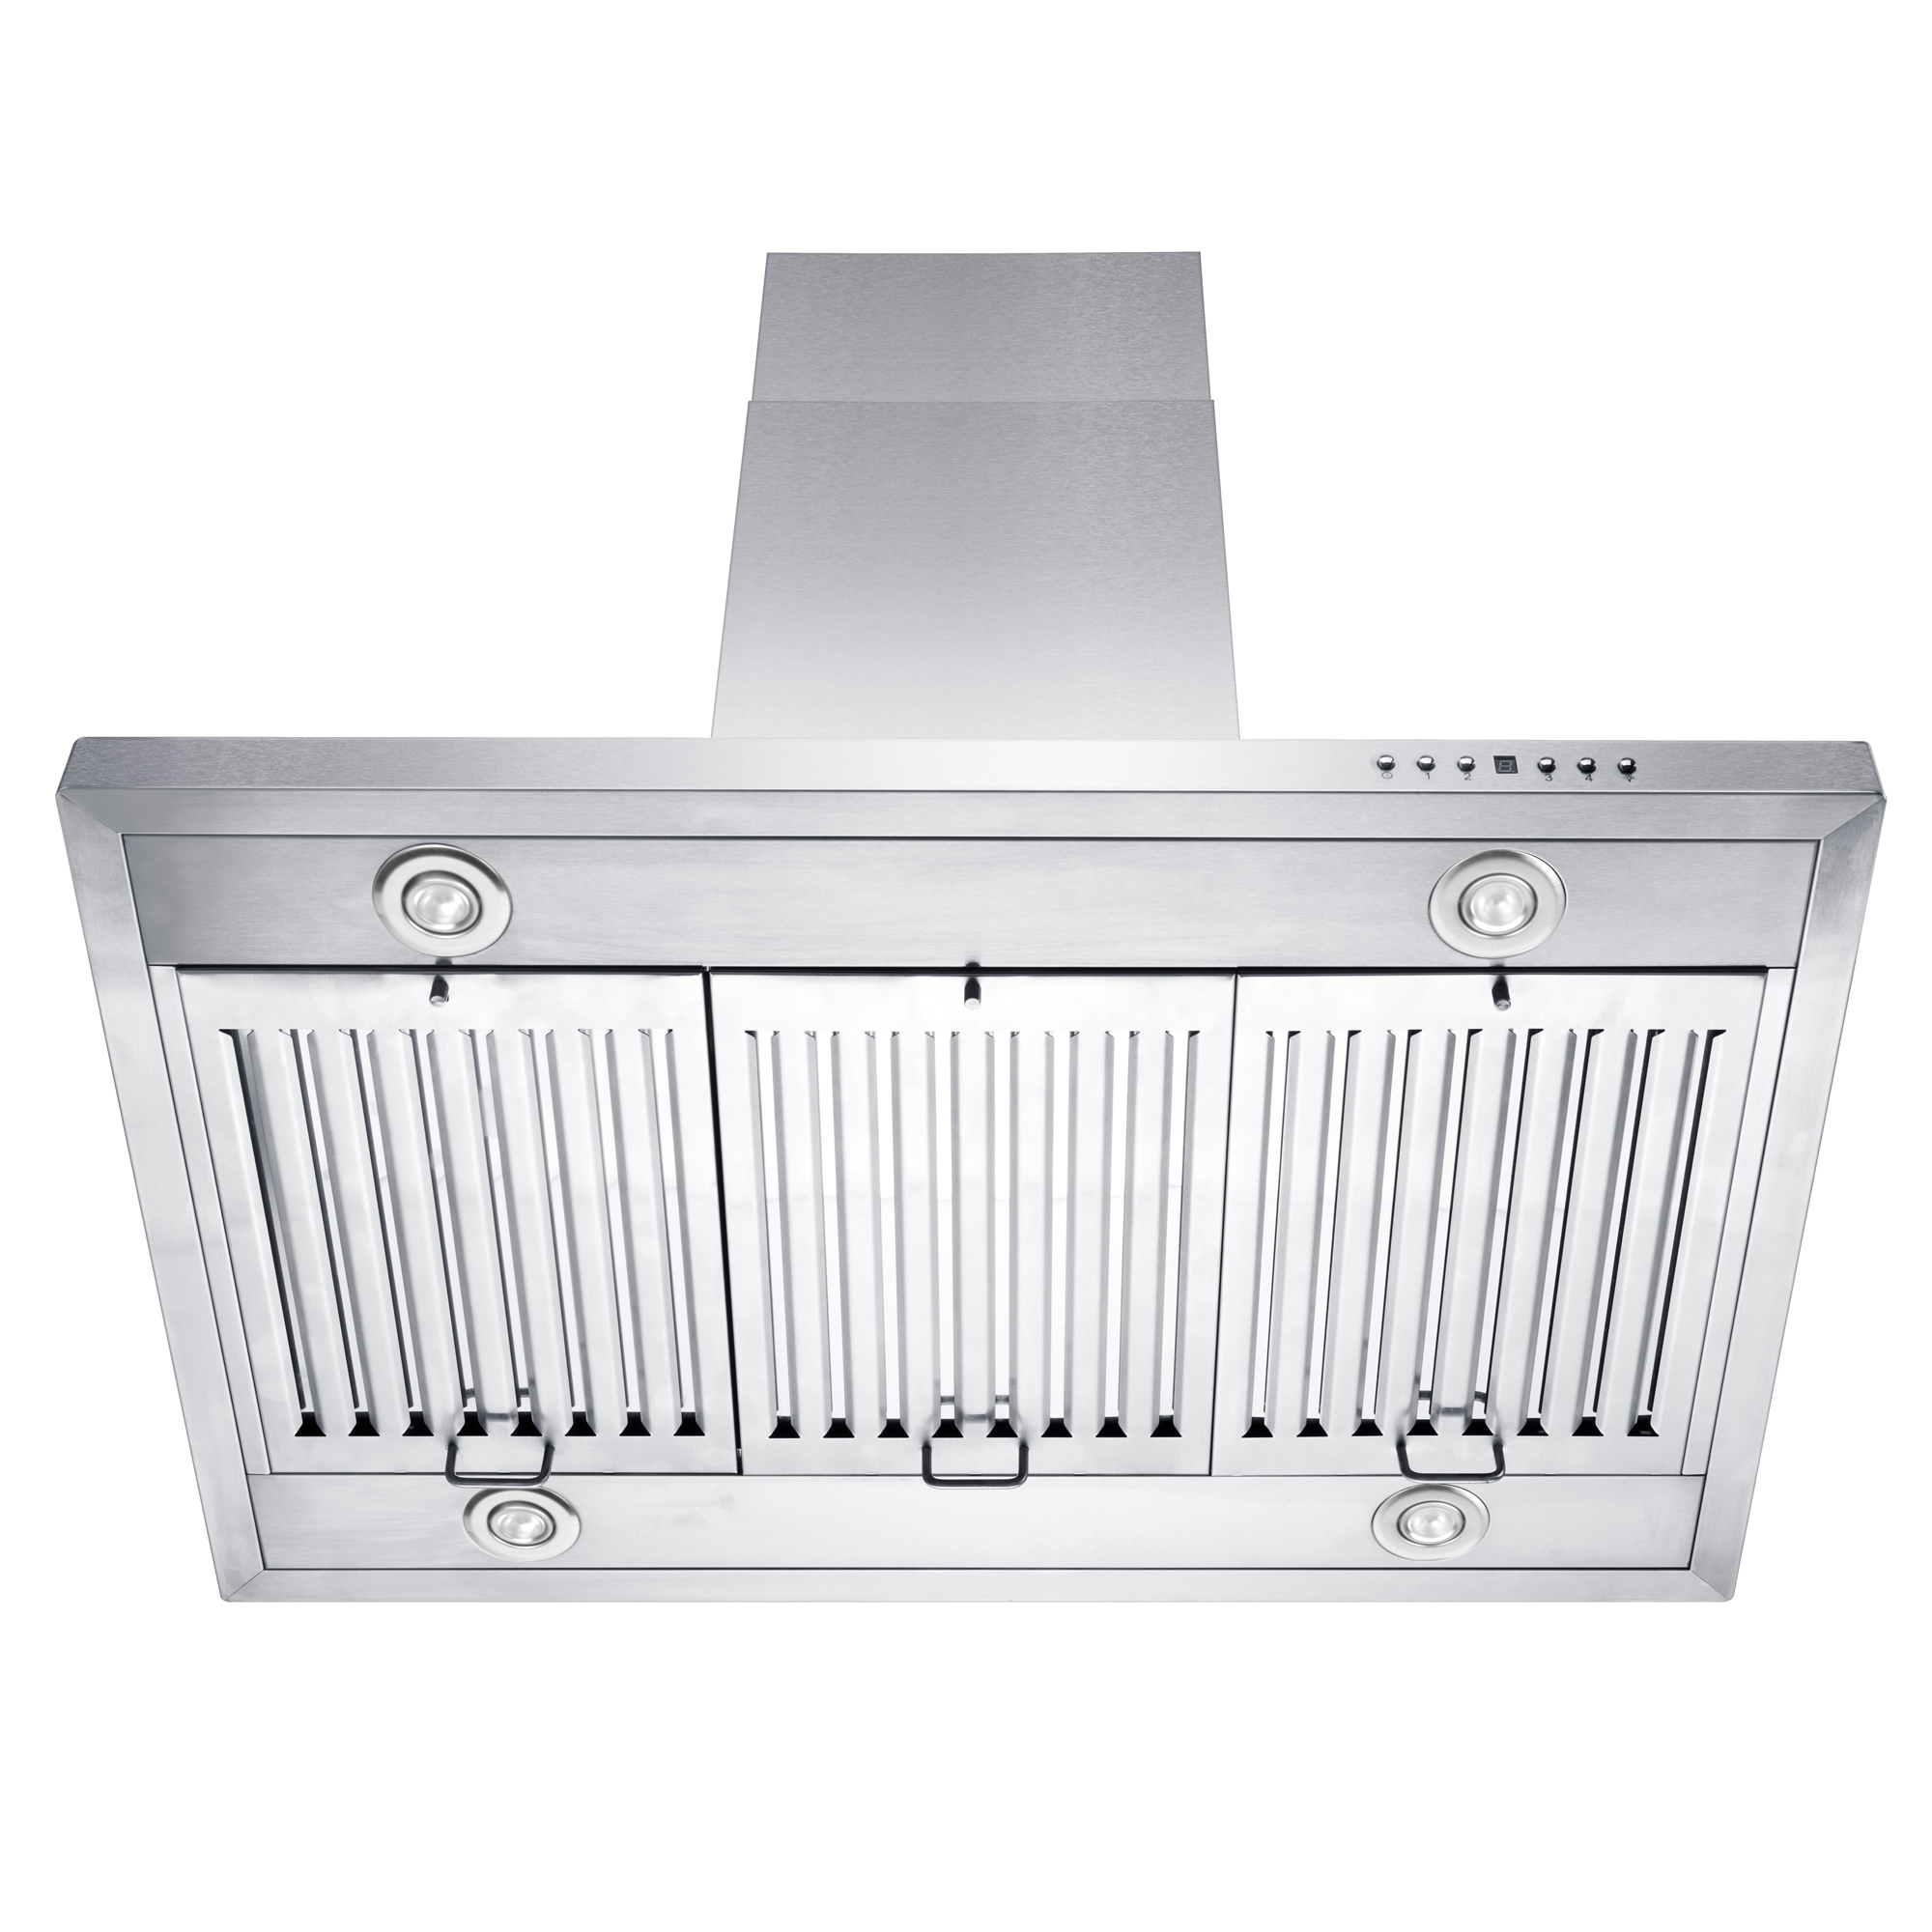 zline-stainless-steel-island-range-hood-GL2i-new-bottom.jpg